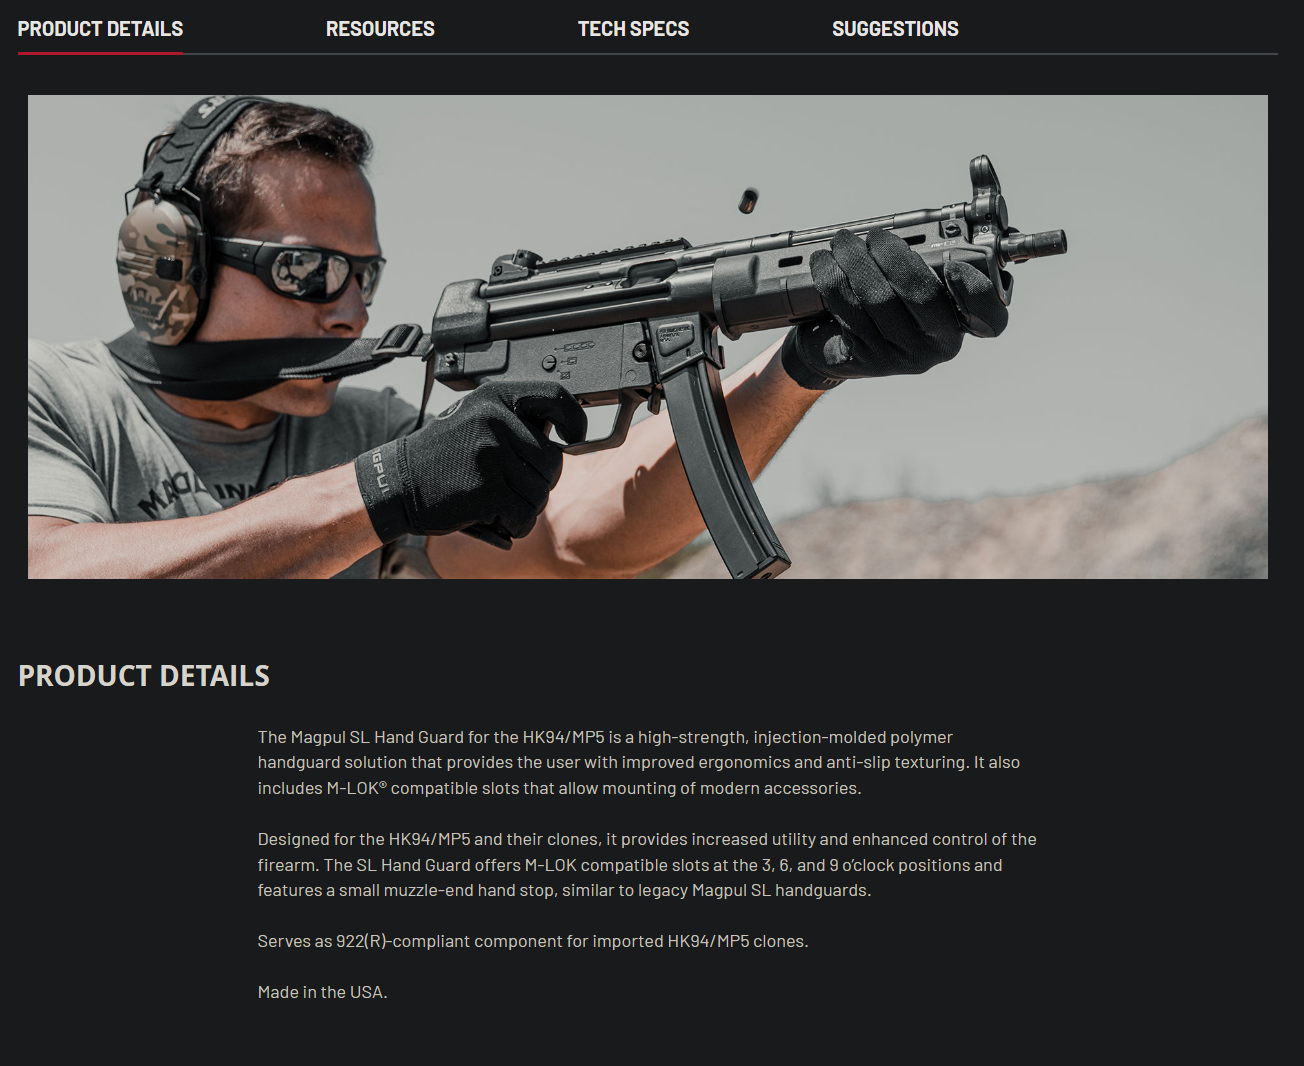 MP5 handguard product description